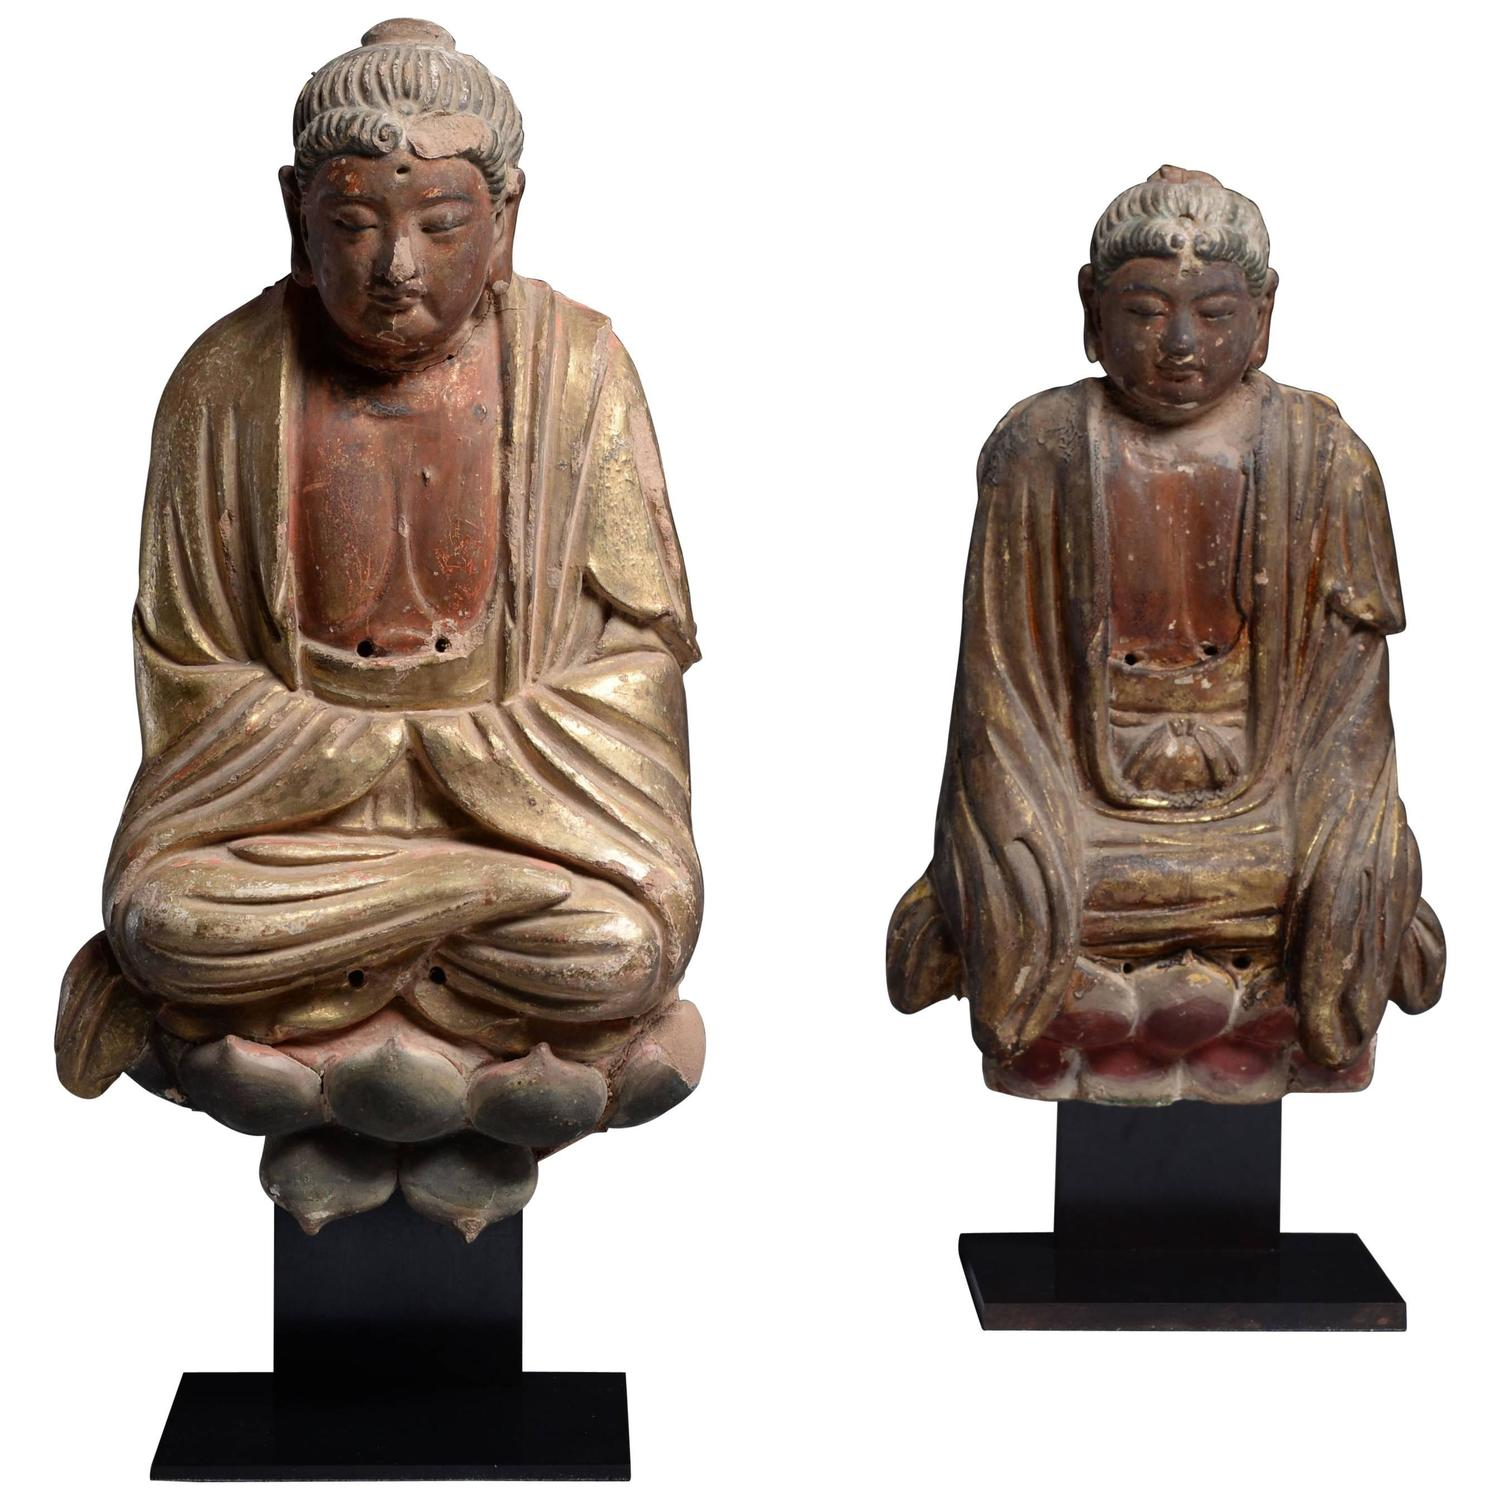 Ancient chinese ming dynasty seated buddha statues 1275 ad for ancient chinese ming dynasty seated buddha statues 1275 ad for sale at 1stdibs buycottarizona